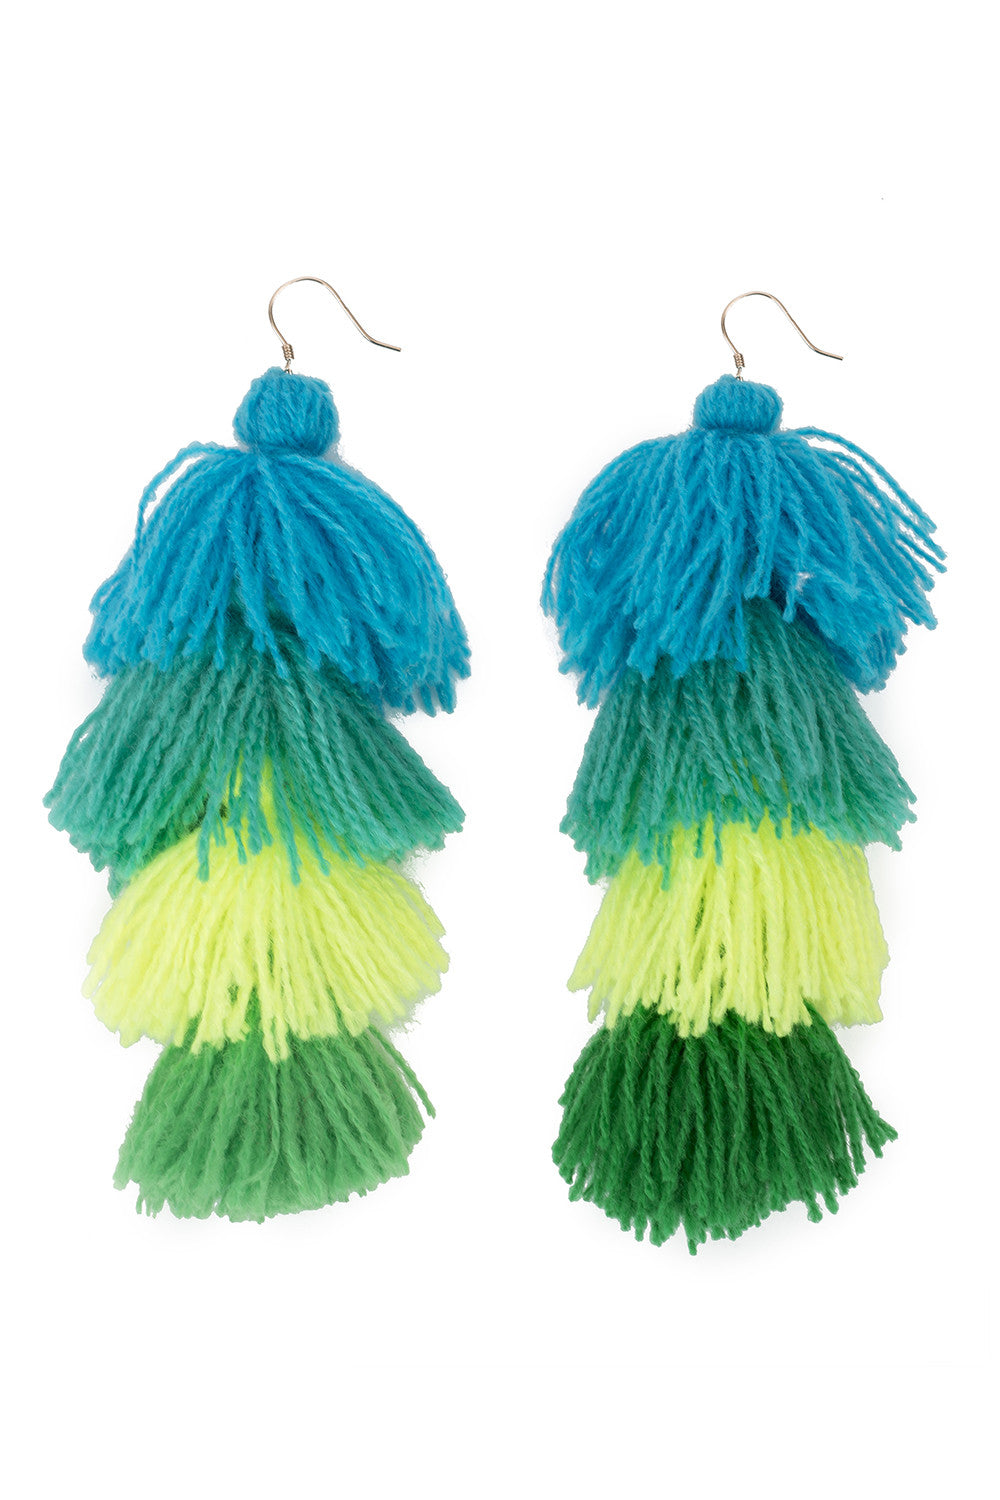 Carlotta Turqs and Caicos Ombre Tassel Earrings - MISA Los Angeles